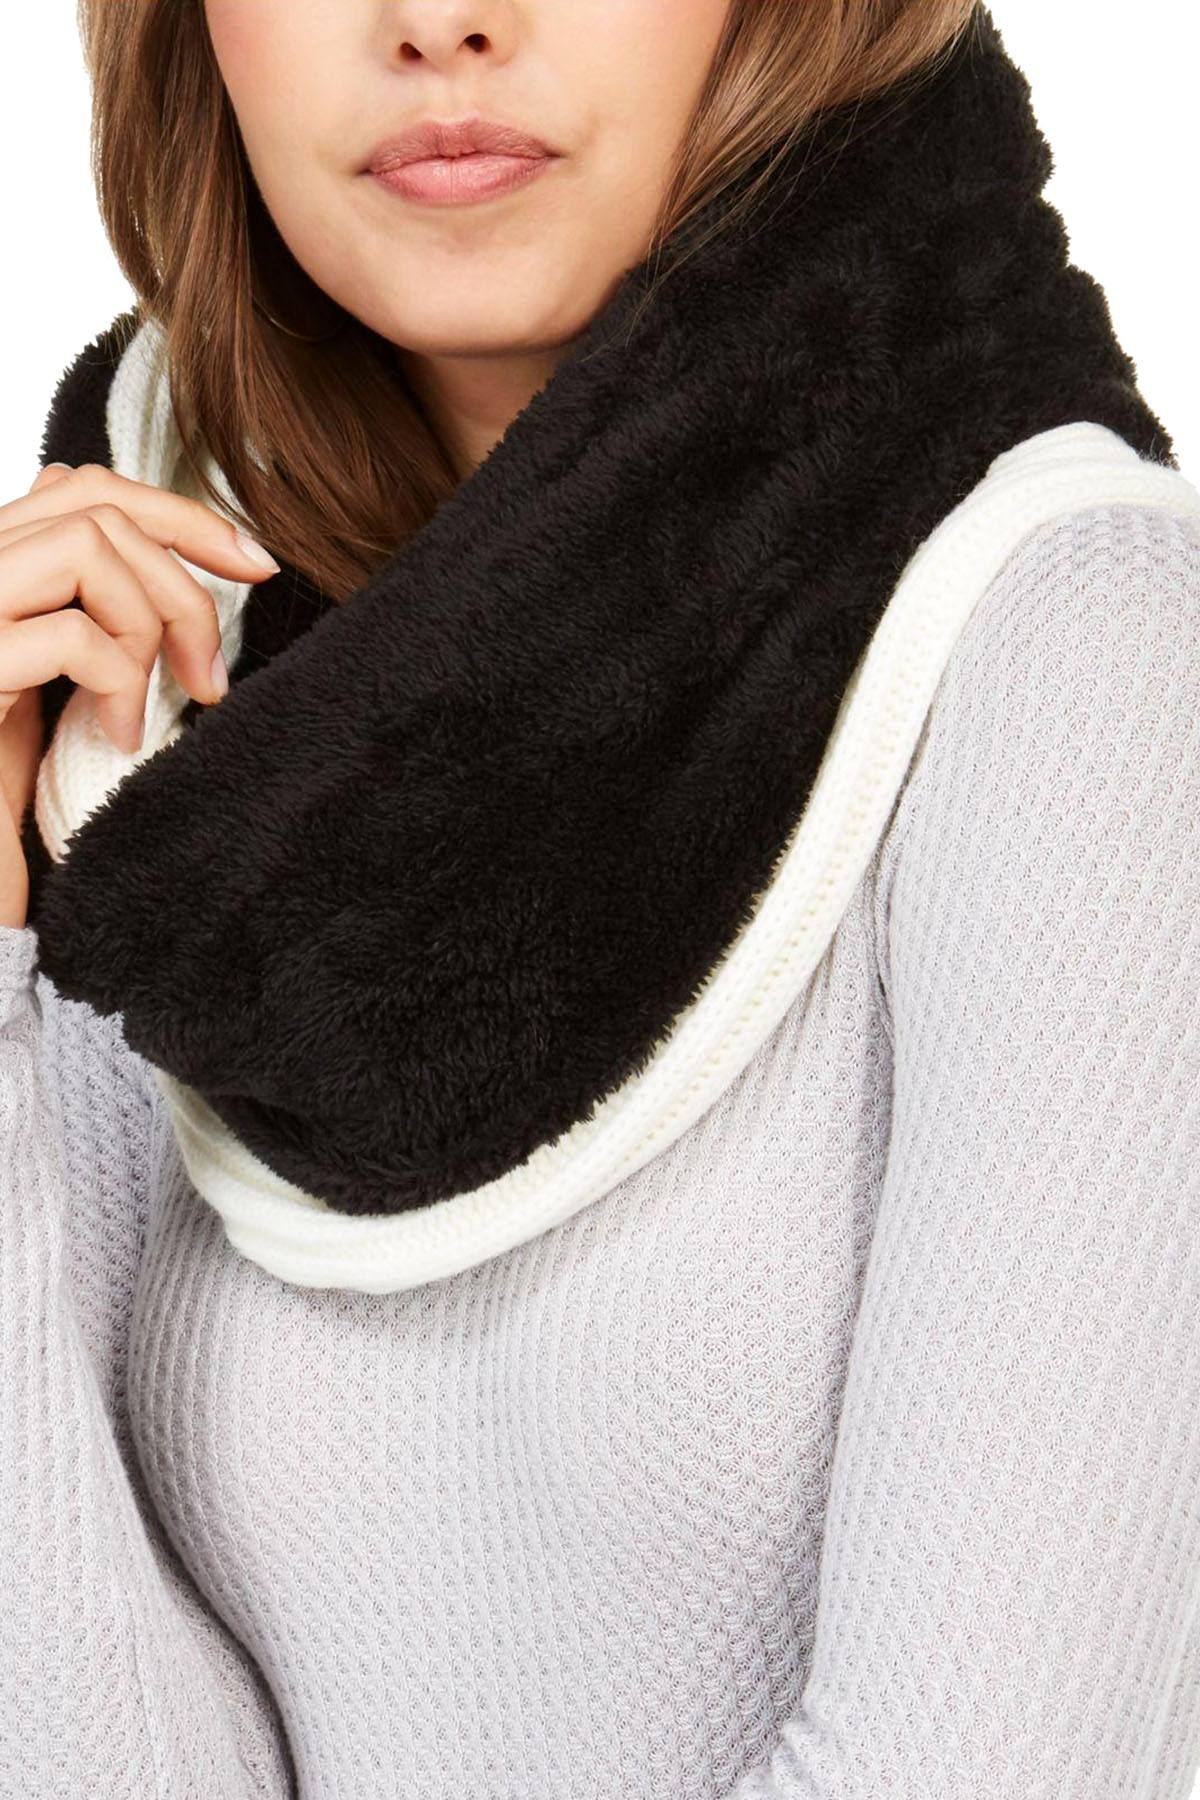 DKNY Cream Fleece Lined Knit Infinity Scarf